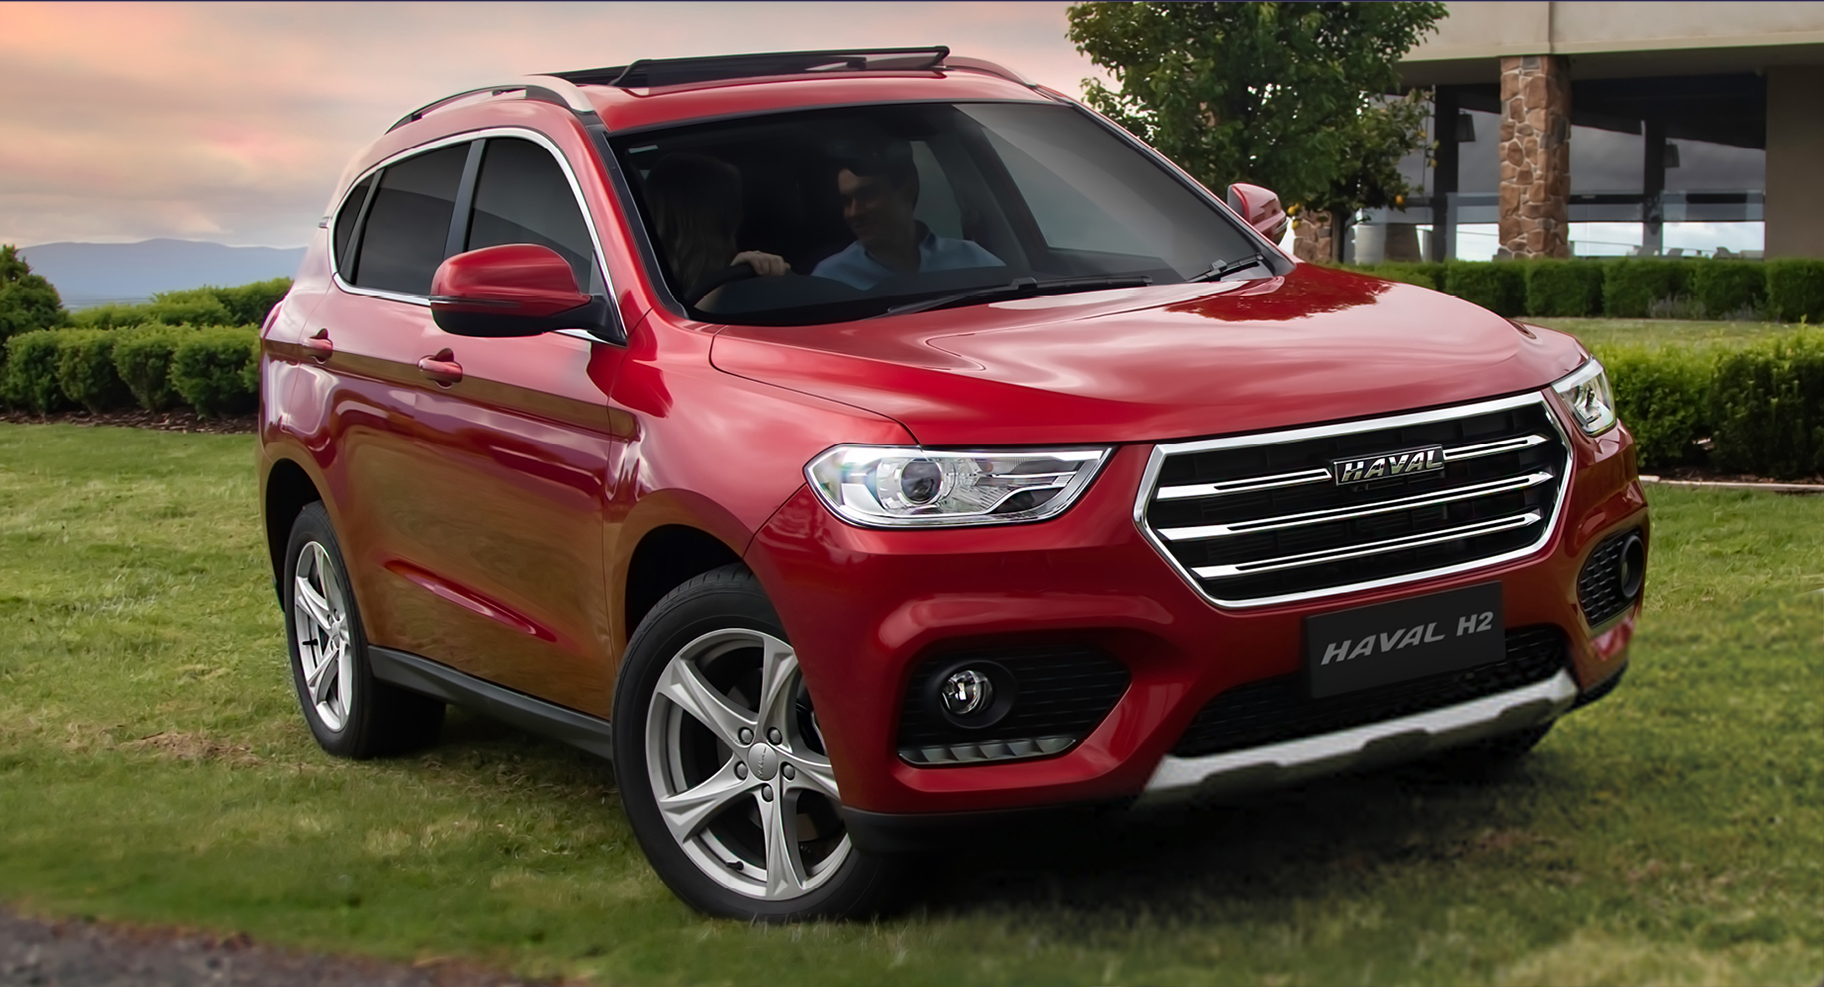 Meet our newest franchise... Haval!